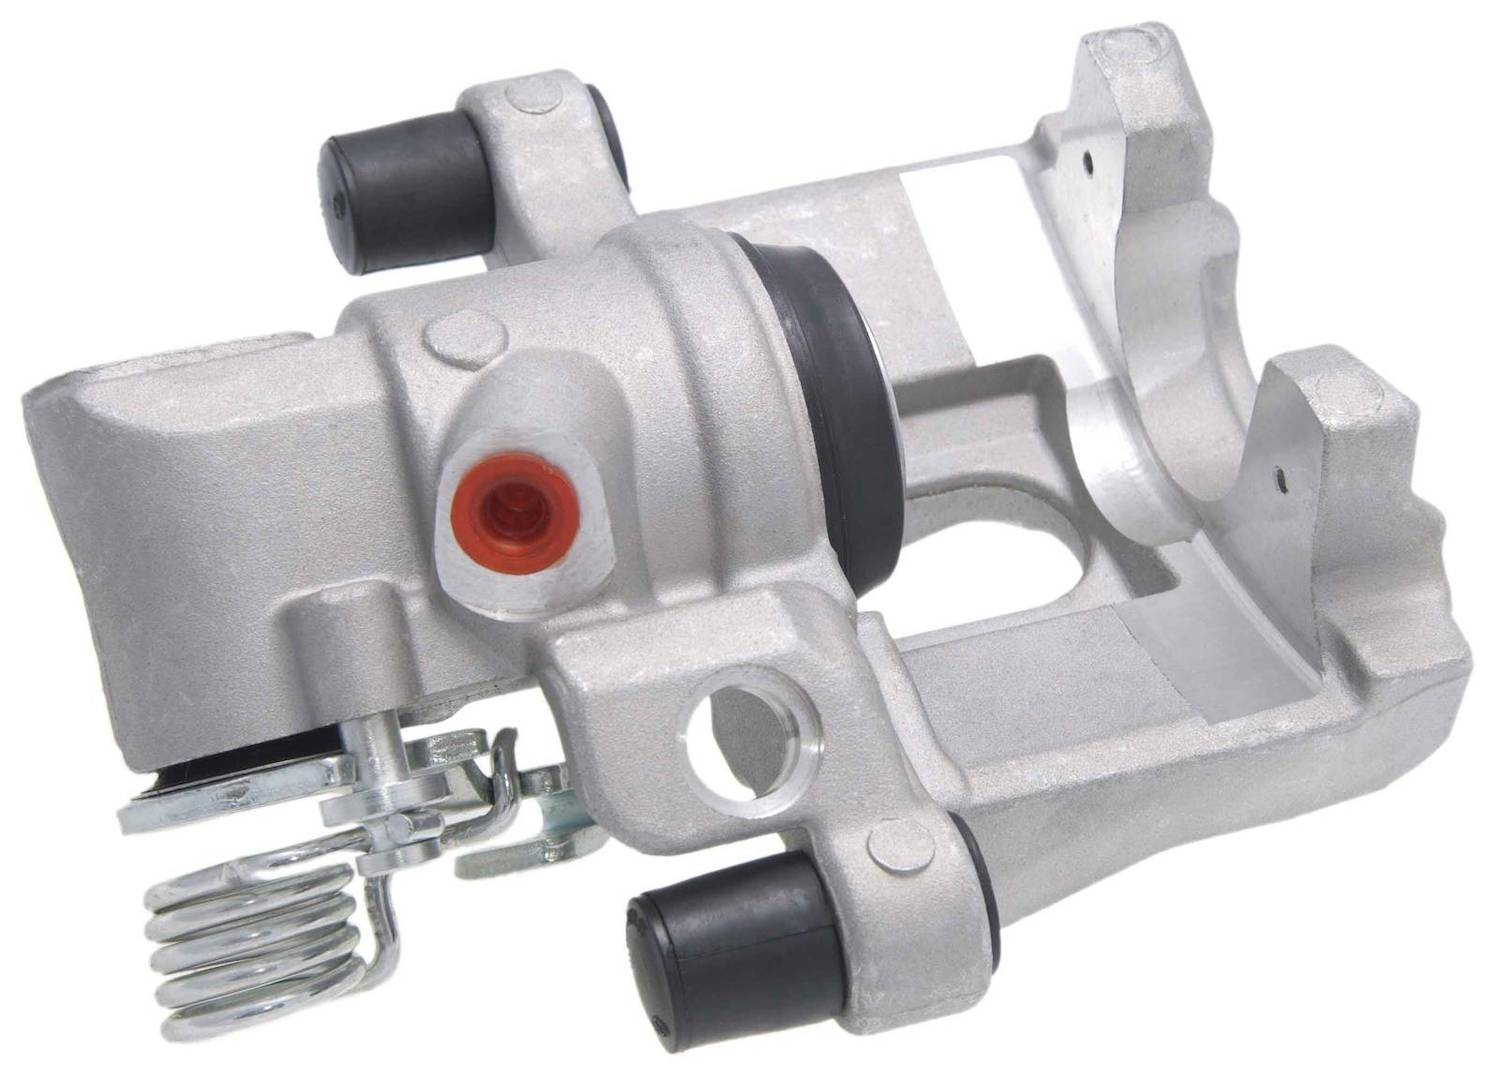 FRONT LEFT BRAKE SUPPORT FEBEST # 0477-KB4FLH 1 Year Warranty 4605A201